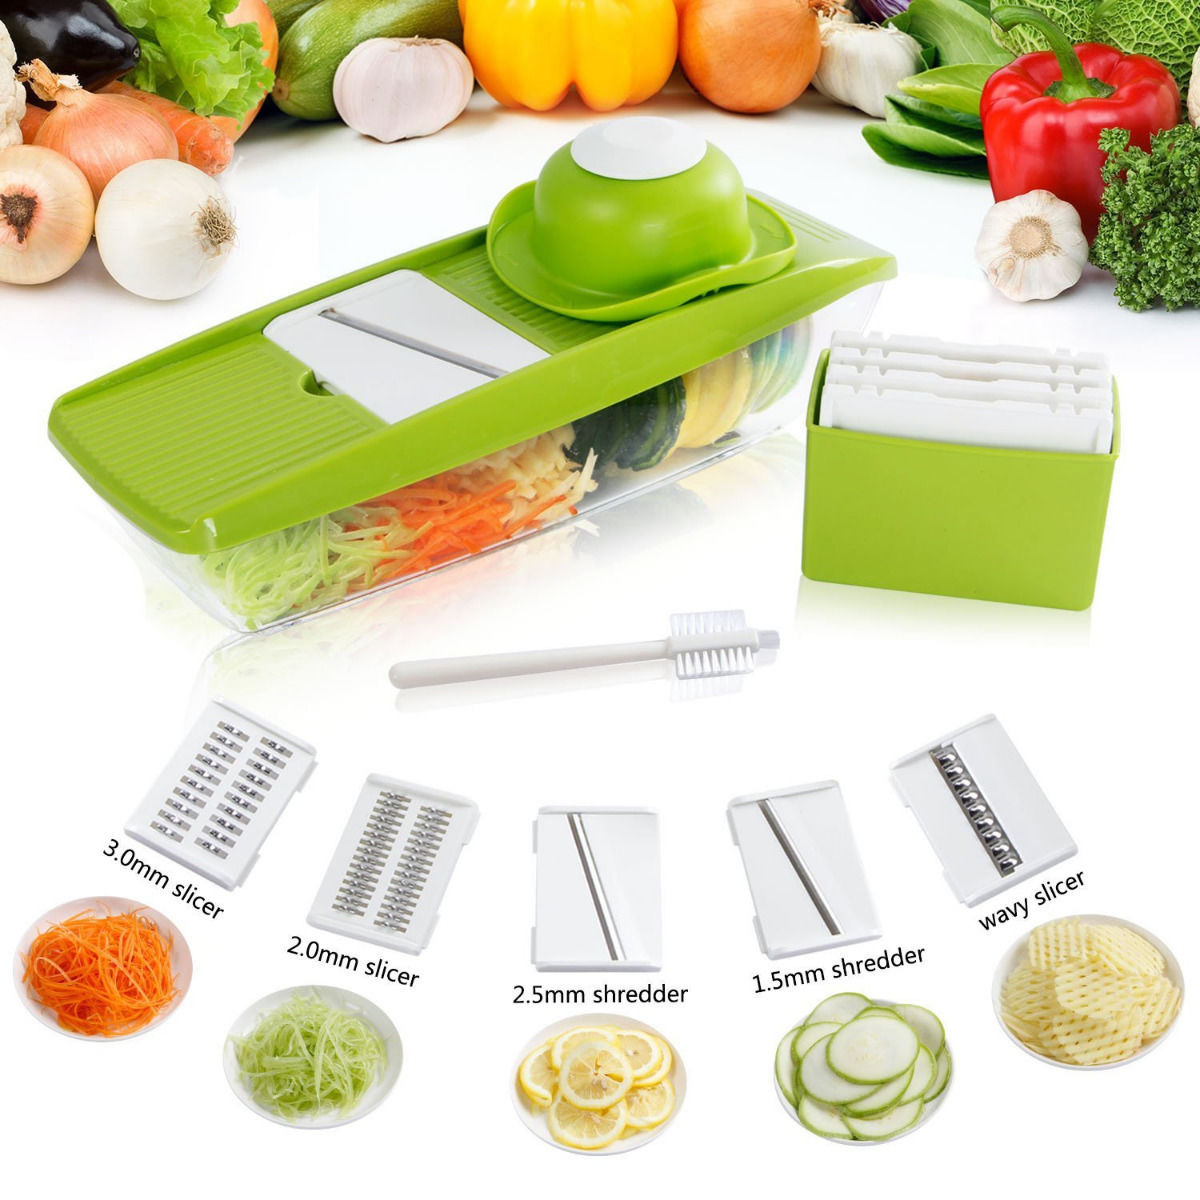 Lifewit Super mandolin Slicer Plus Vegetable Fruit Dicer Cutter Chopper Nicer Grater ABS by